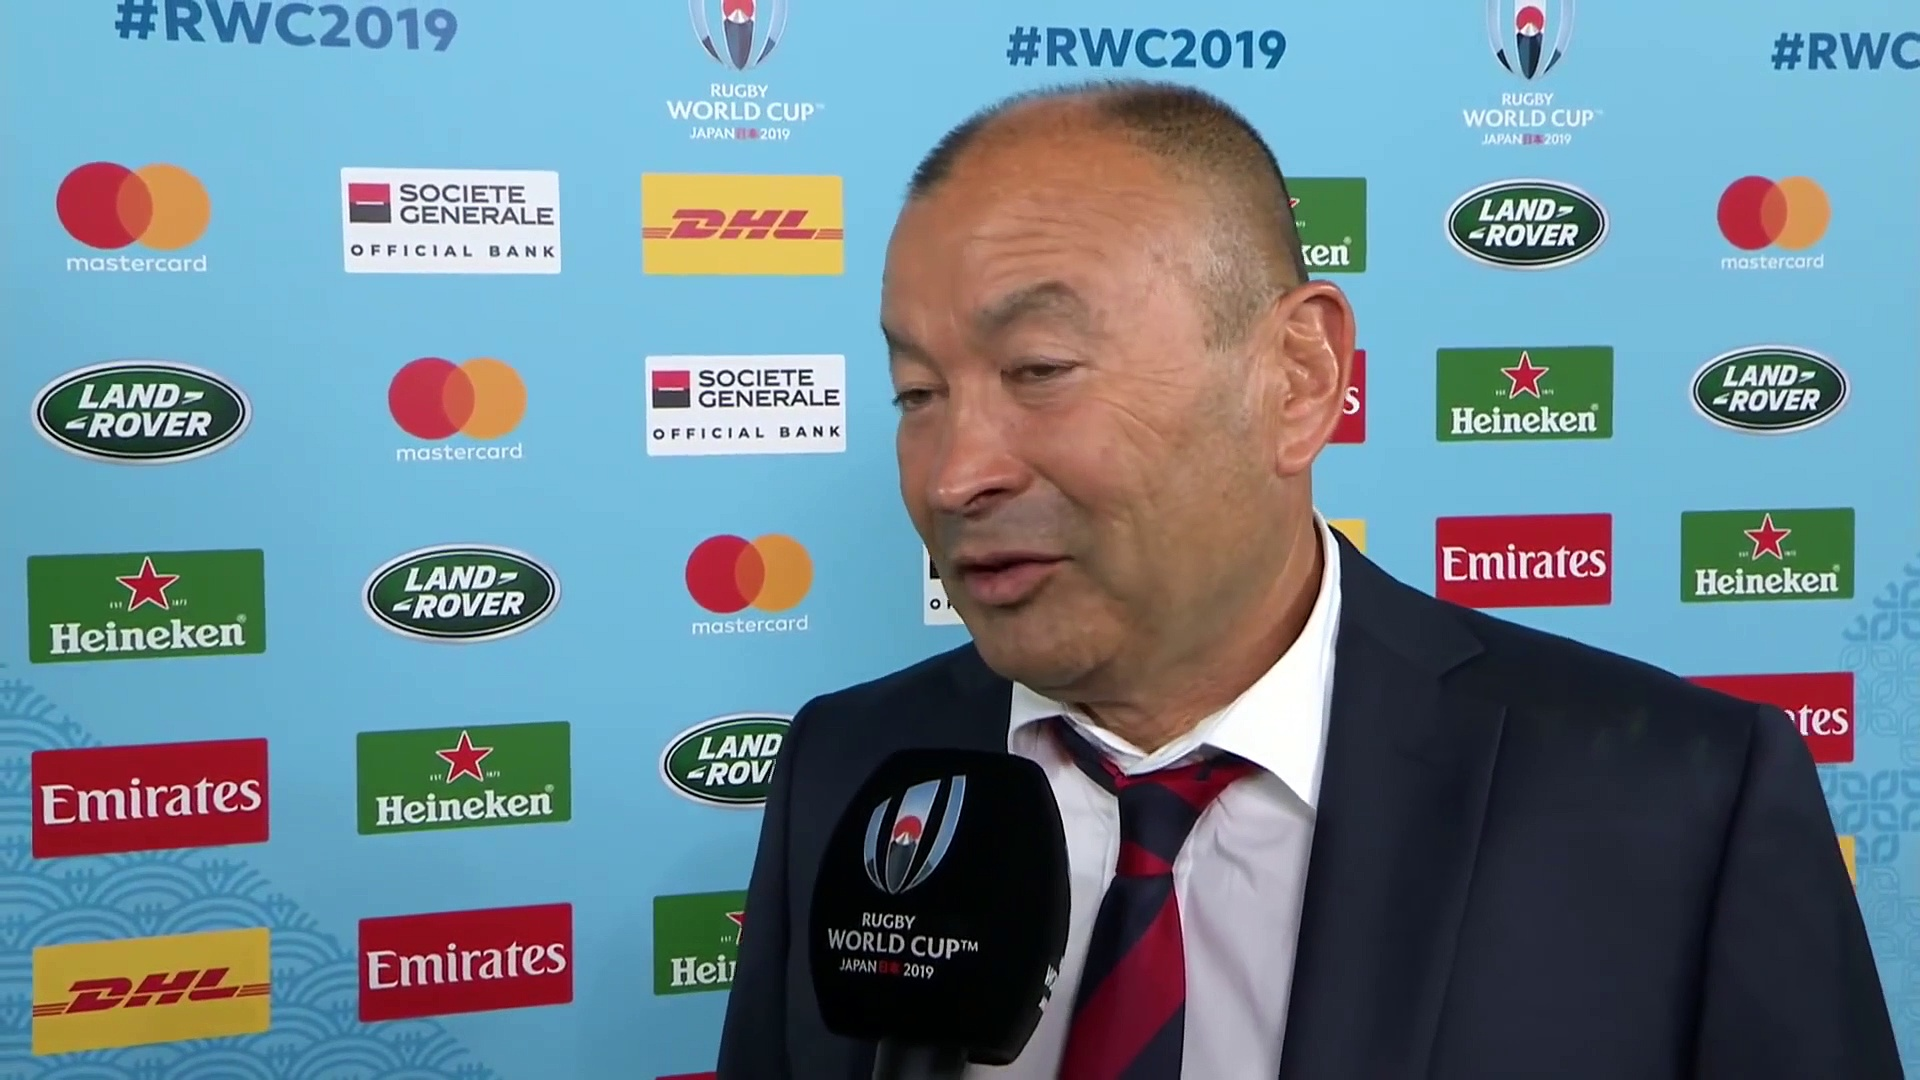 Eddie Jones Interview after the Rugby World Cup 2019 Final